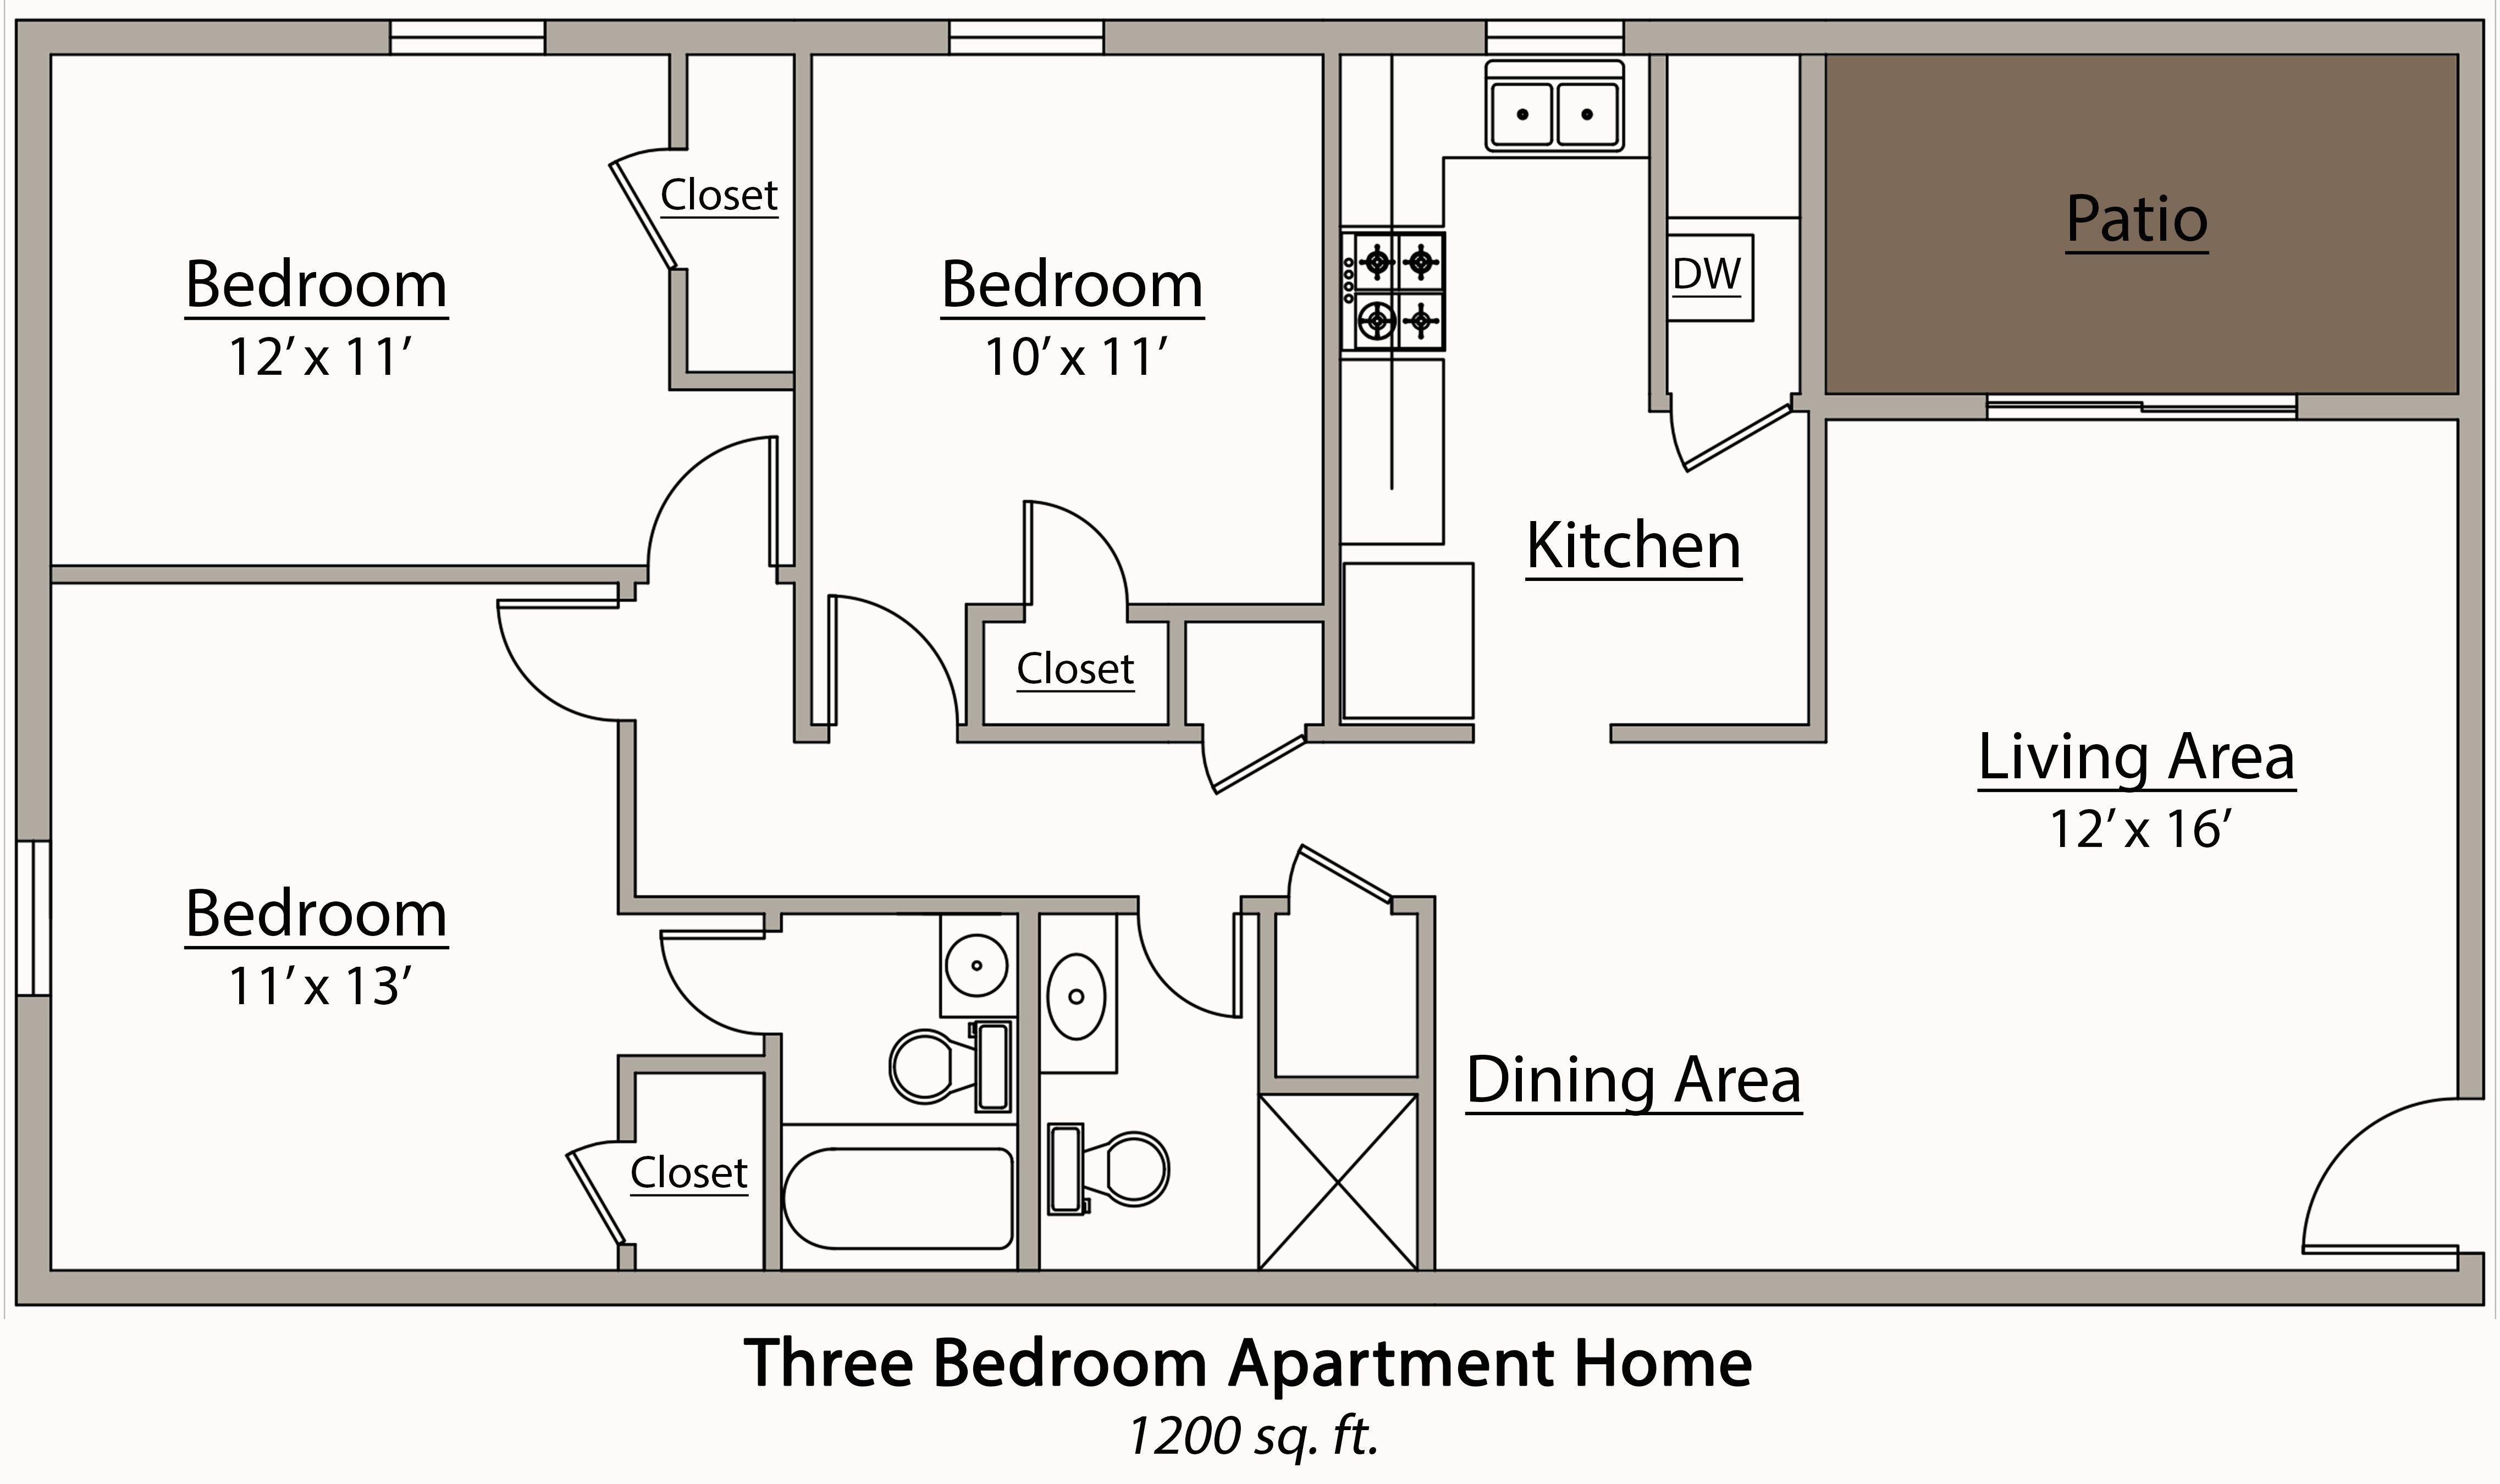 Best 26 Decorative 3 Bedroom Apartment Plan House Plans 87223 With Pictures